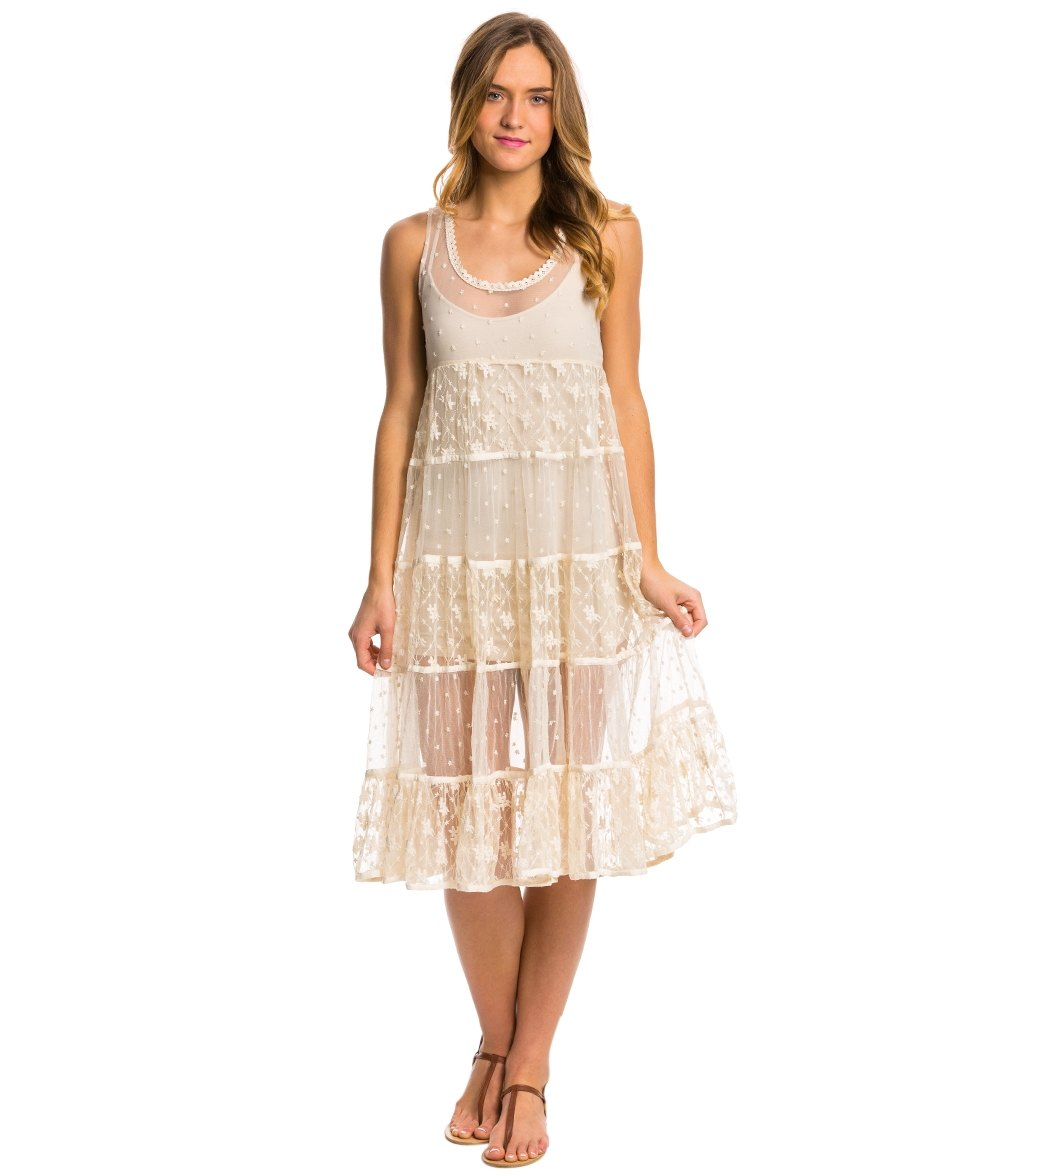 df38b993ee Billabong Chasaed By Gypsies Maxi Dress at SwimOutlet.com - Free ...